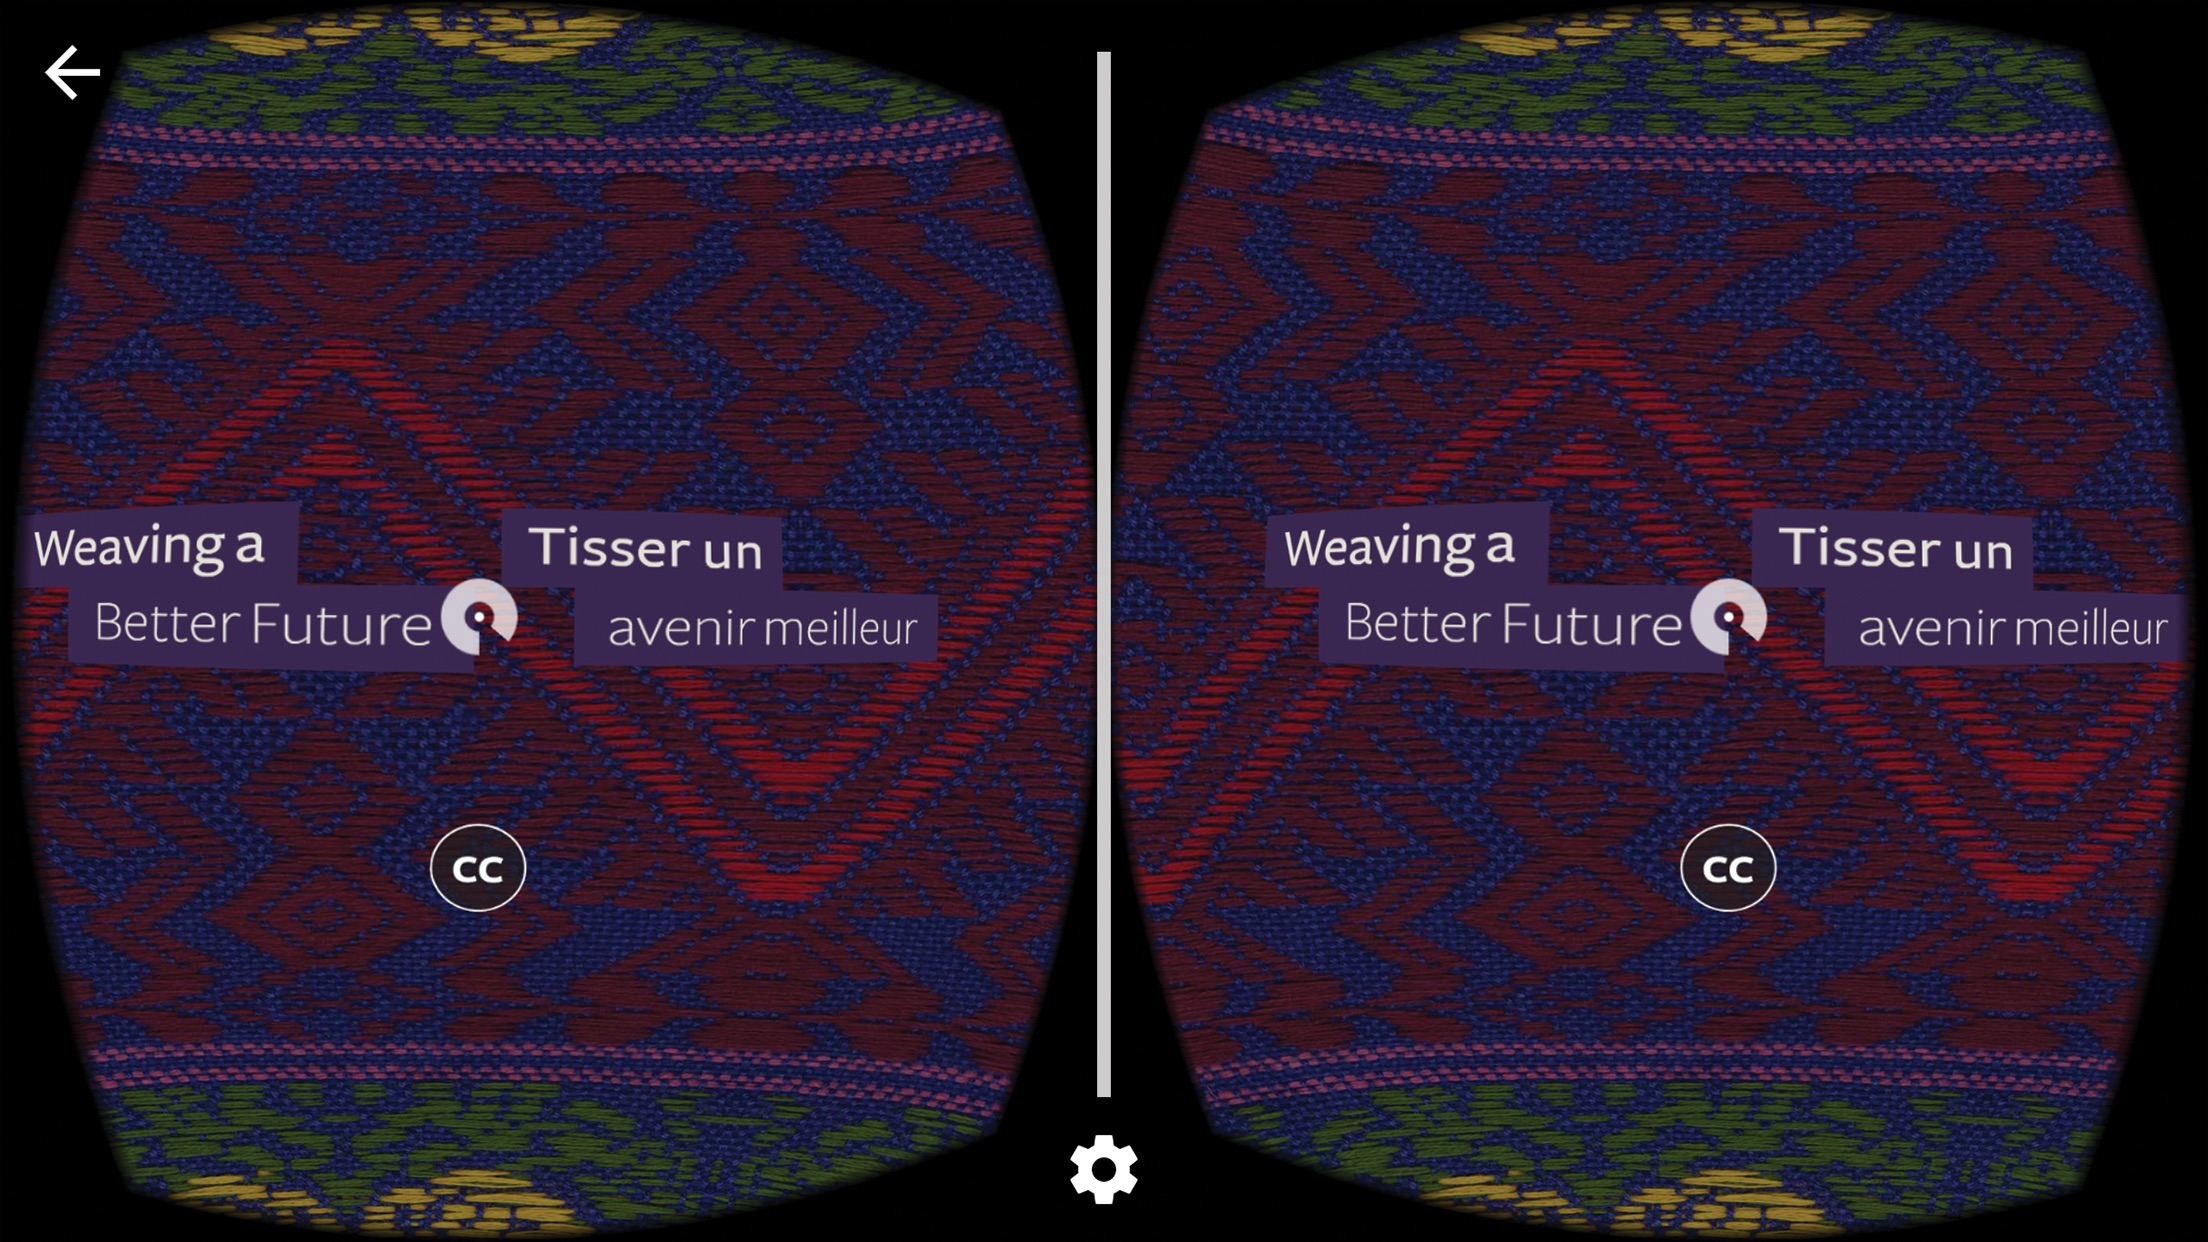 Stereoscopic view of user interface with cursor in view.